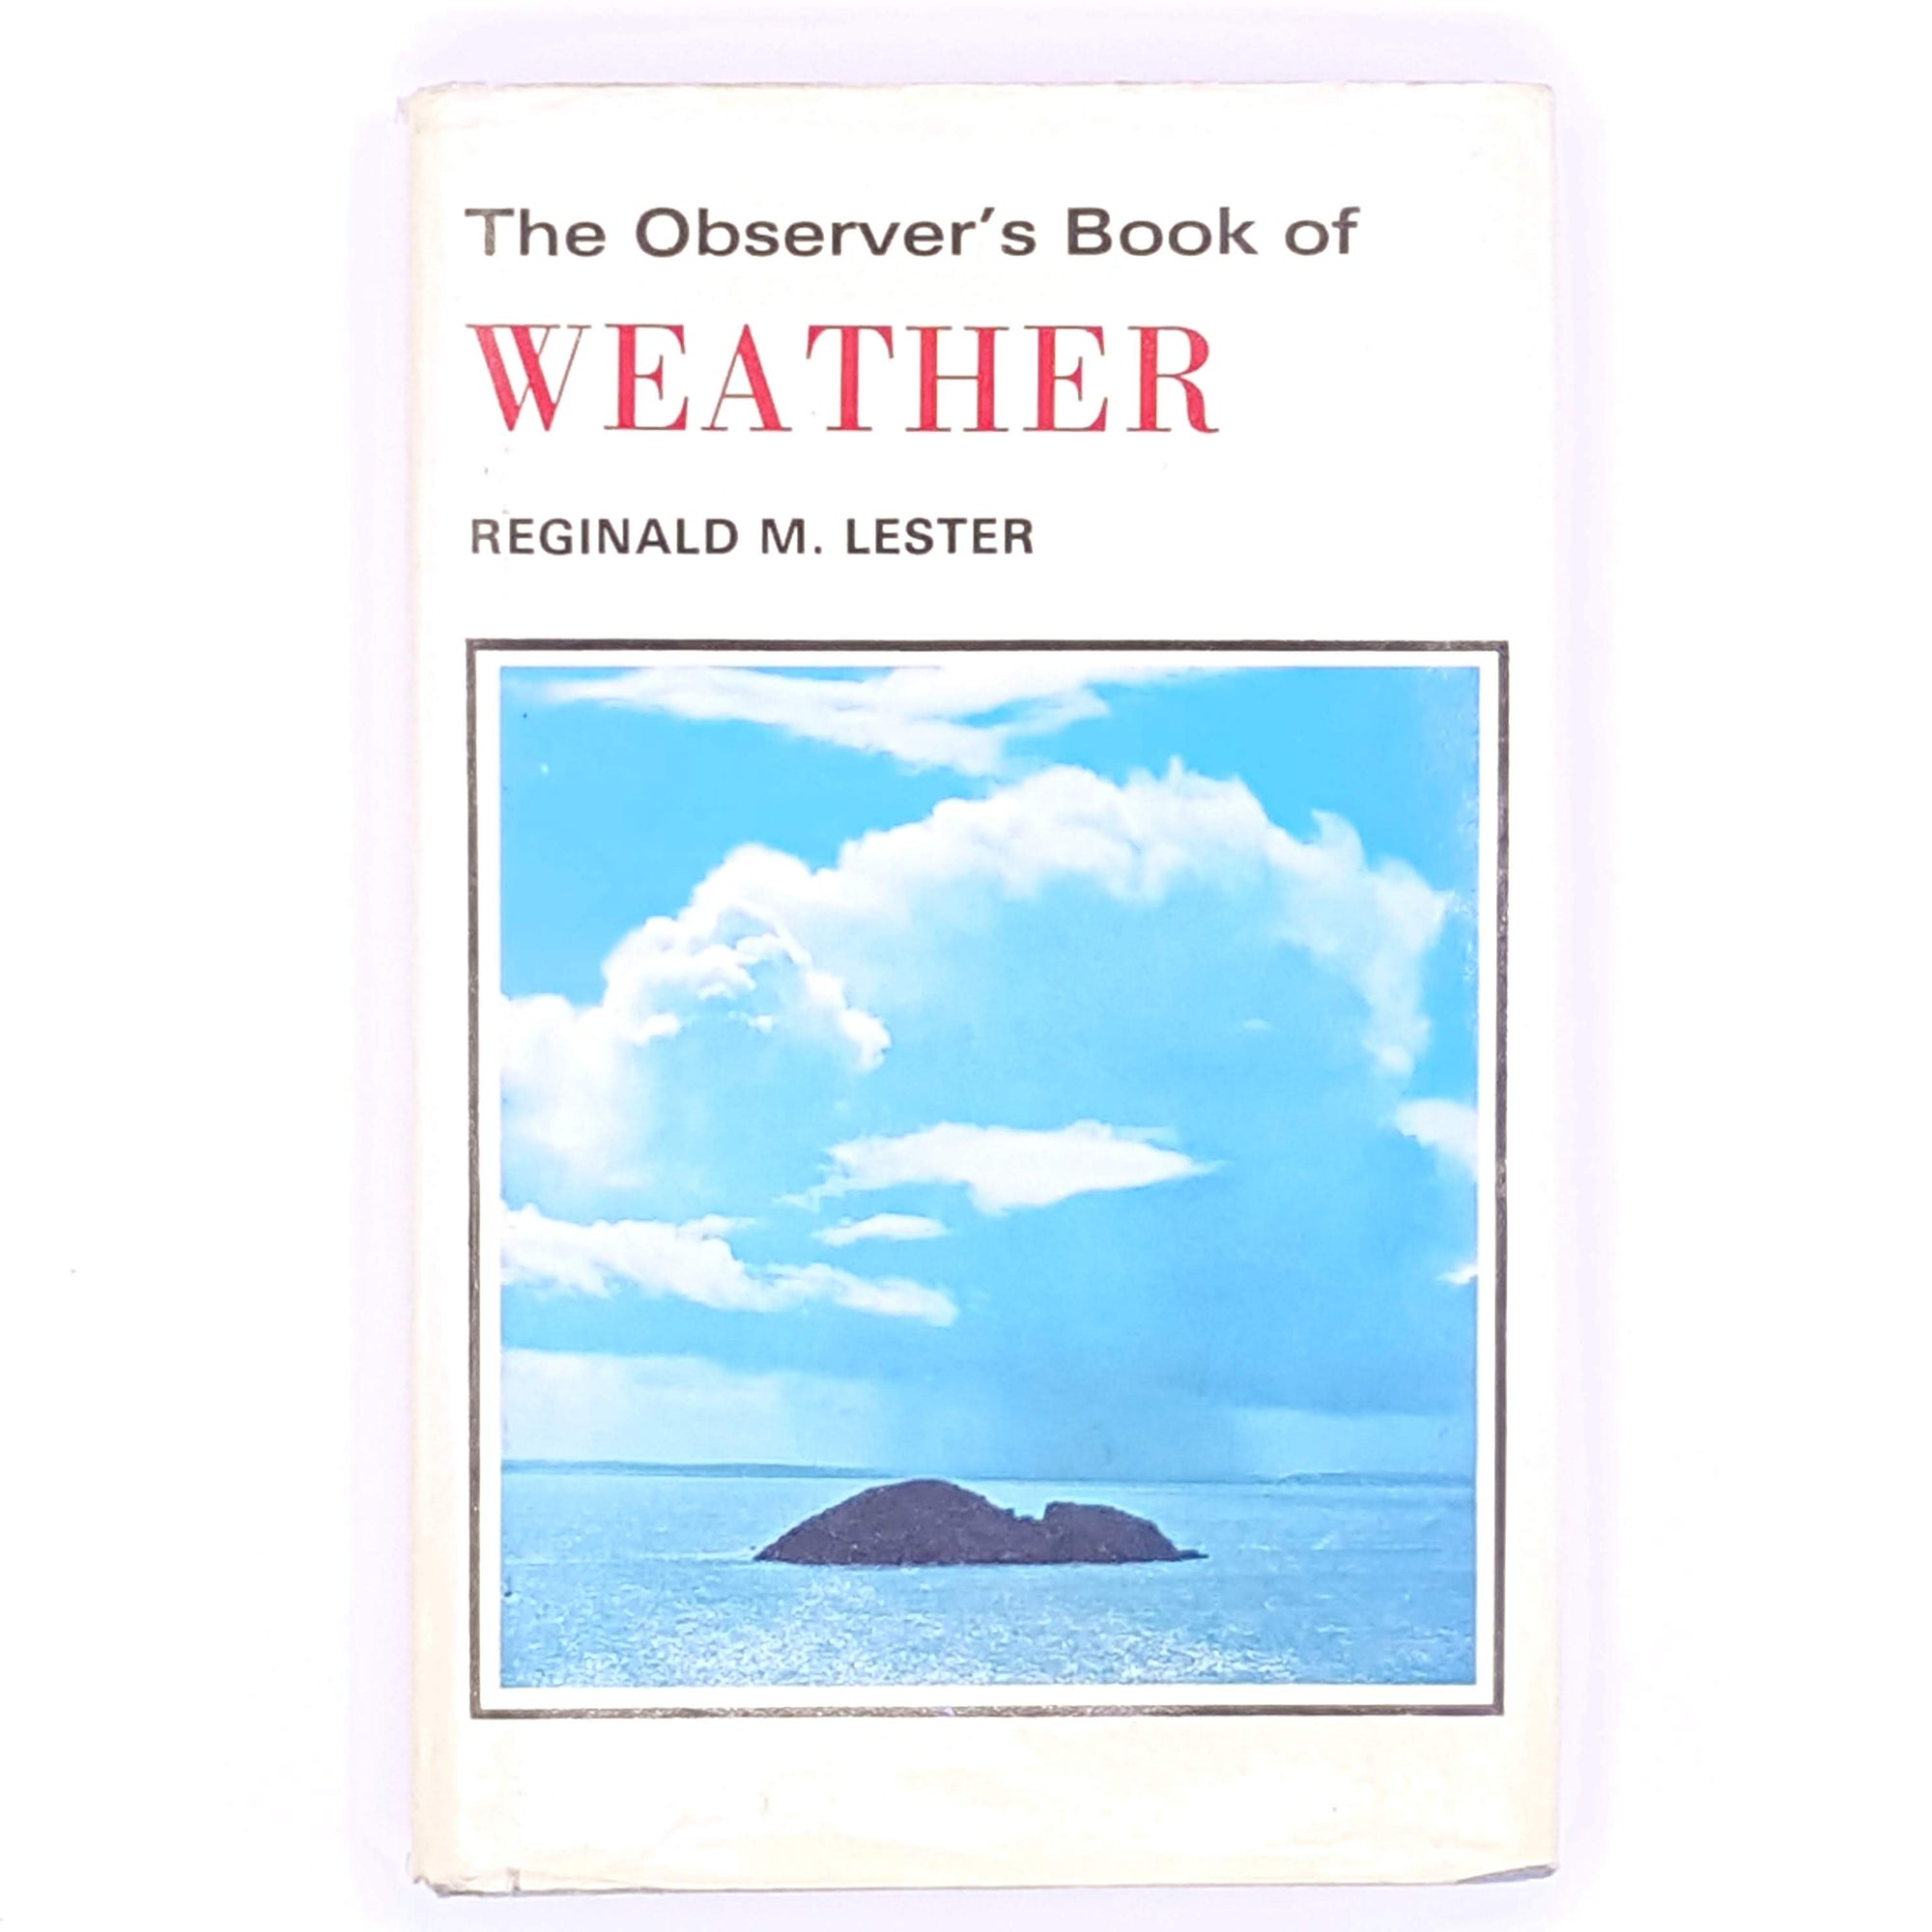 pocket-weather-observer-country-house-library-antique-decorative-books-old-1964-vintage-guide-thrift-frederick-warne-rain-classic-sun-seasons-reginald-M-Lester-